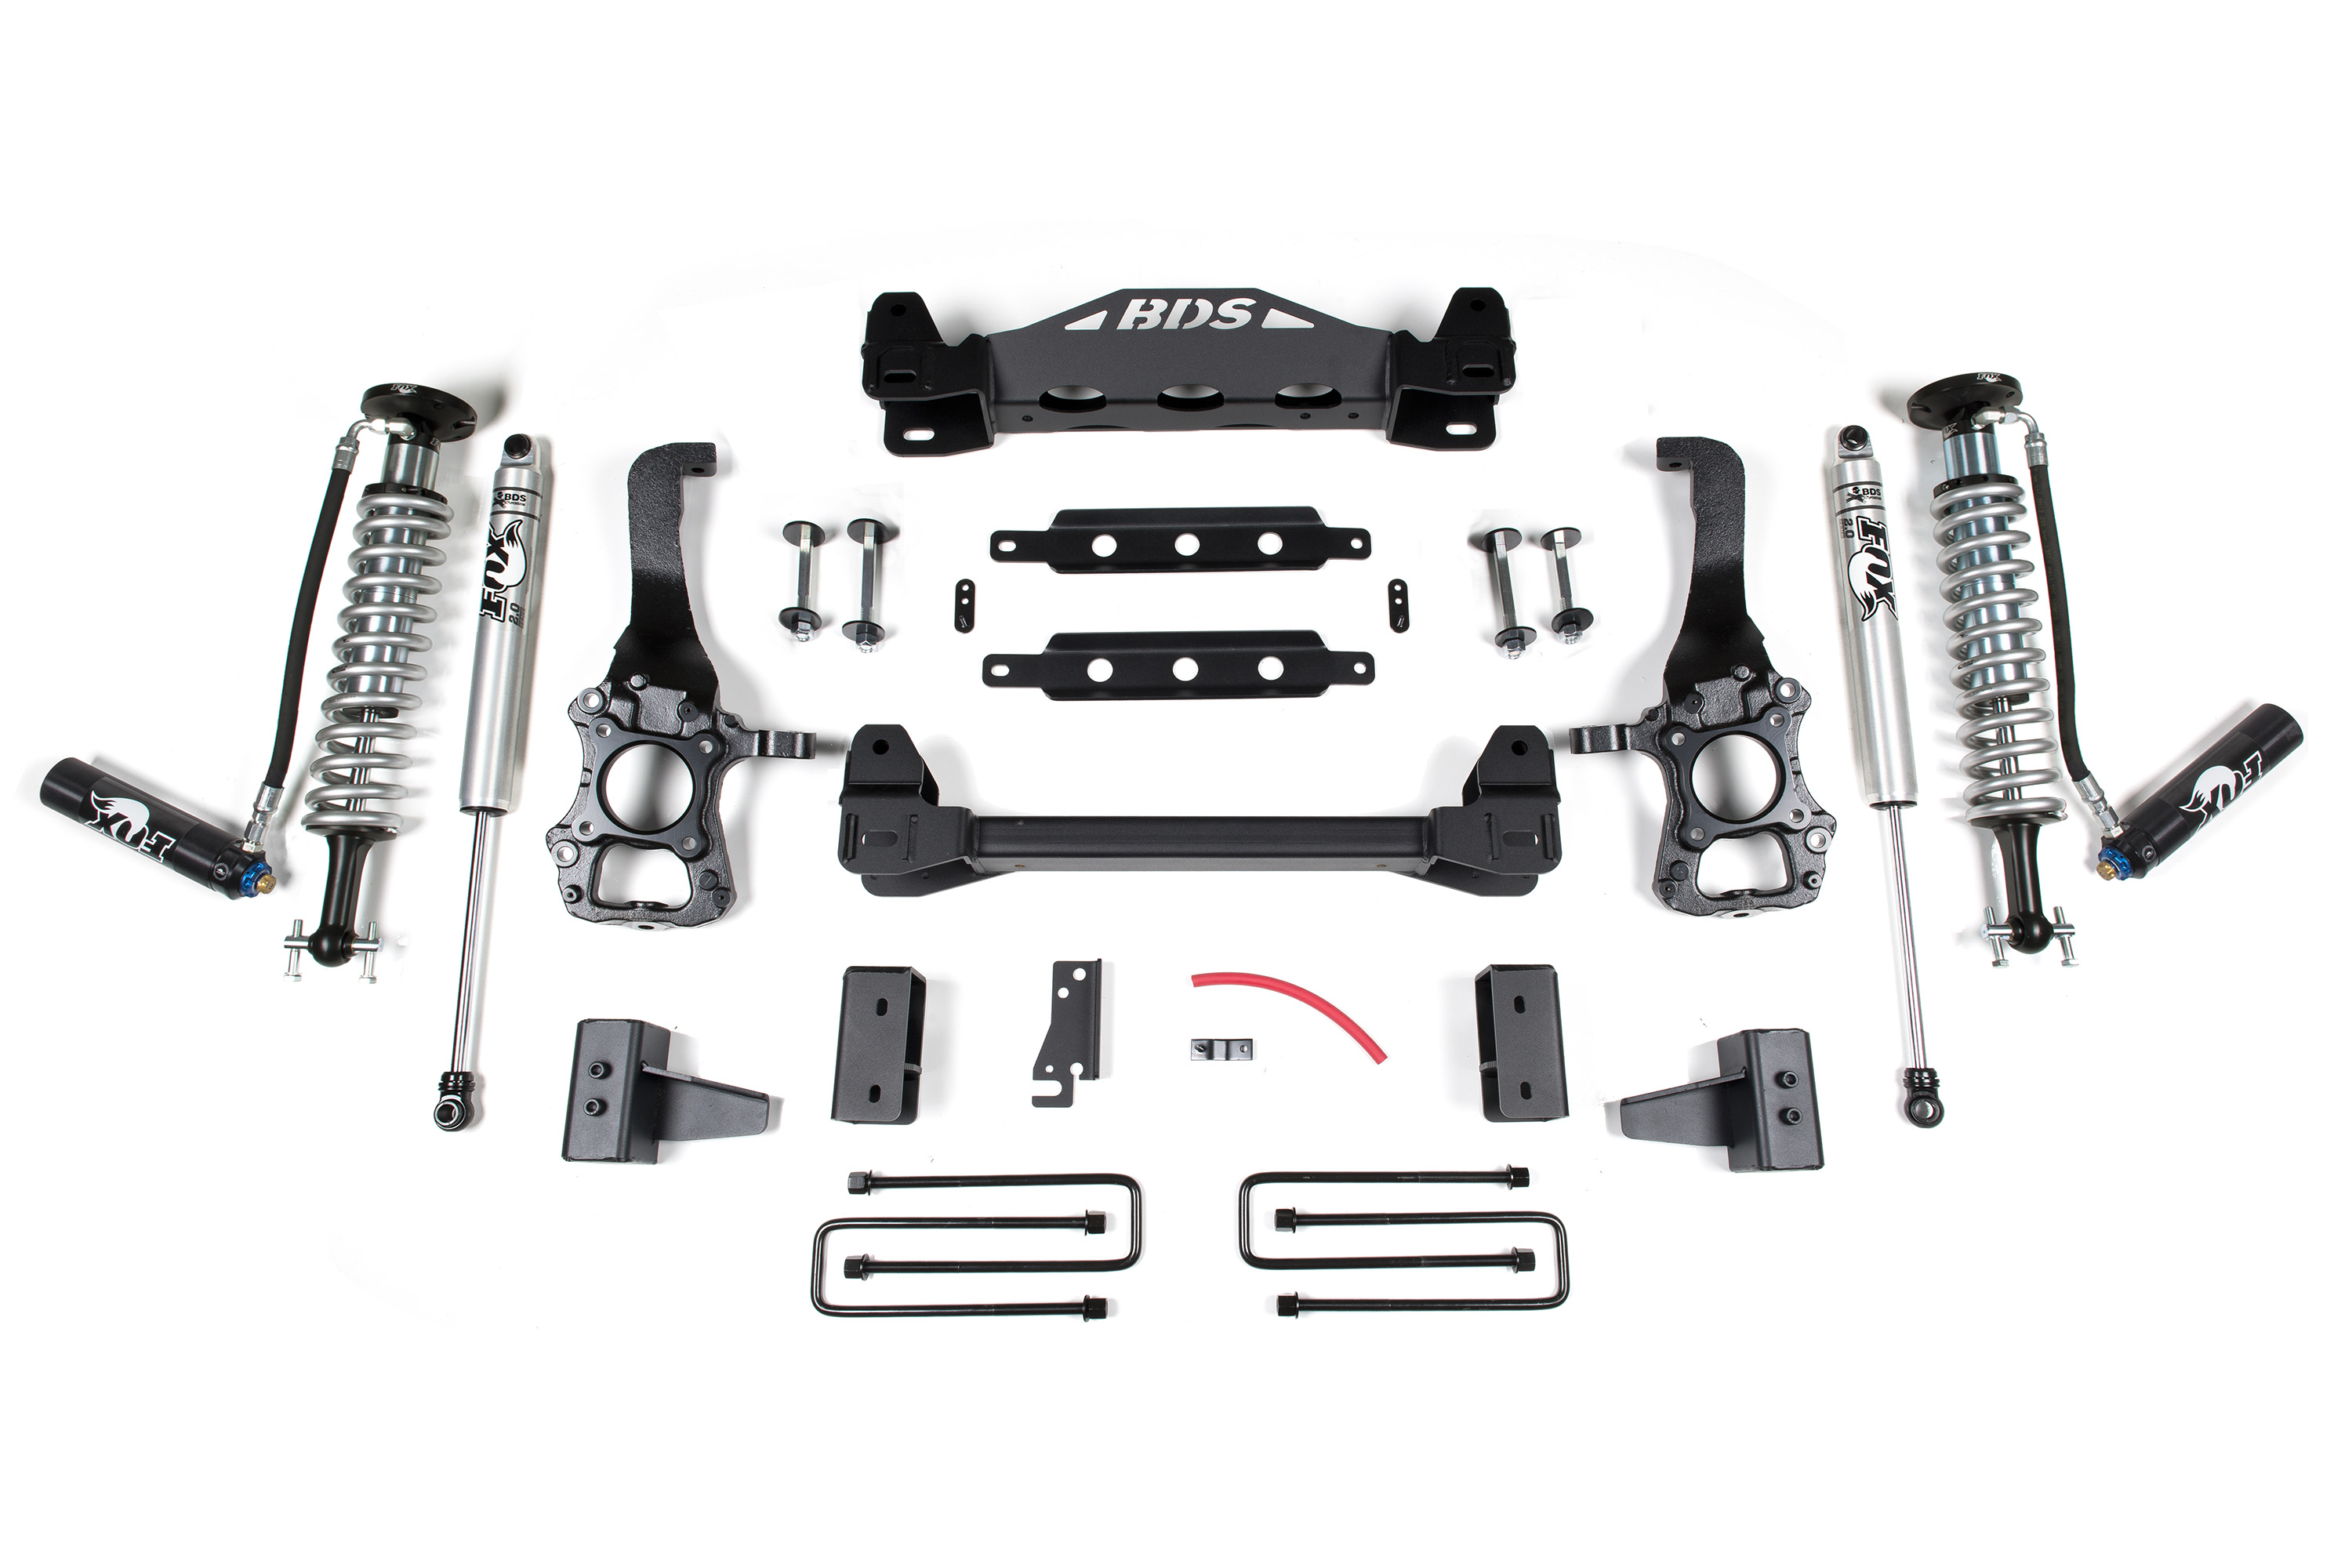 Bds New Product Announcement Ford F150 2wd Lift Kits